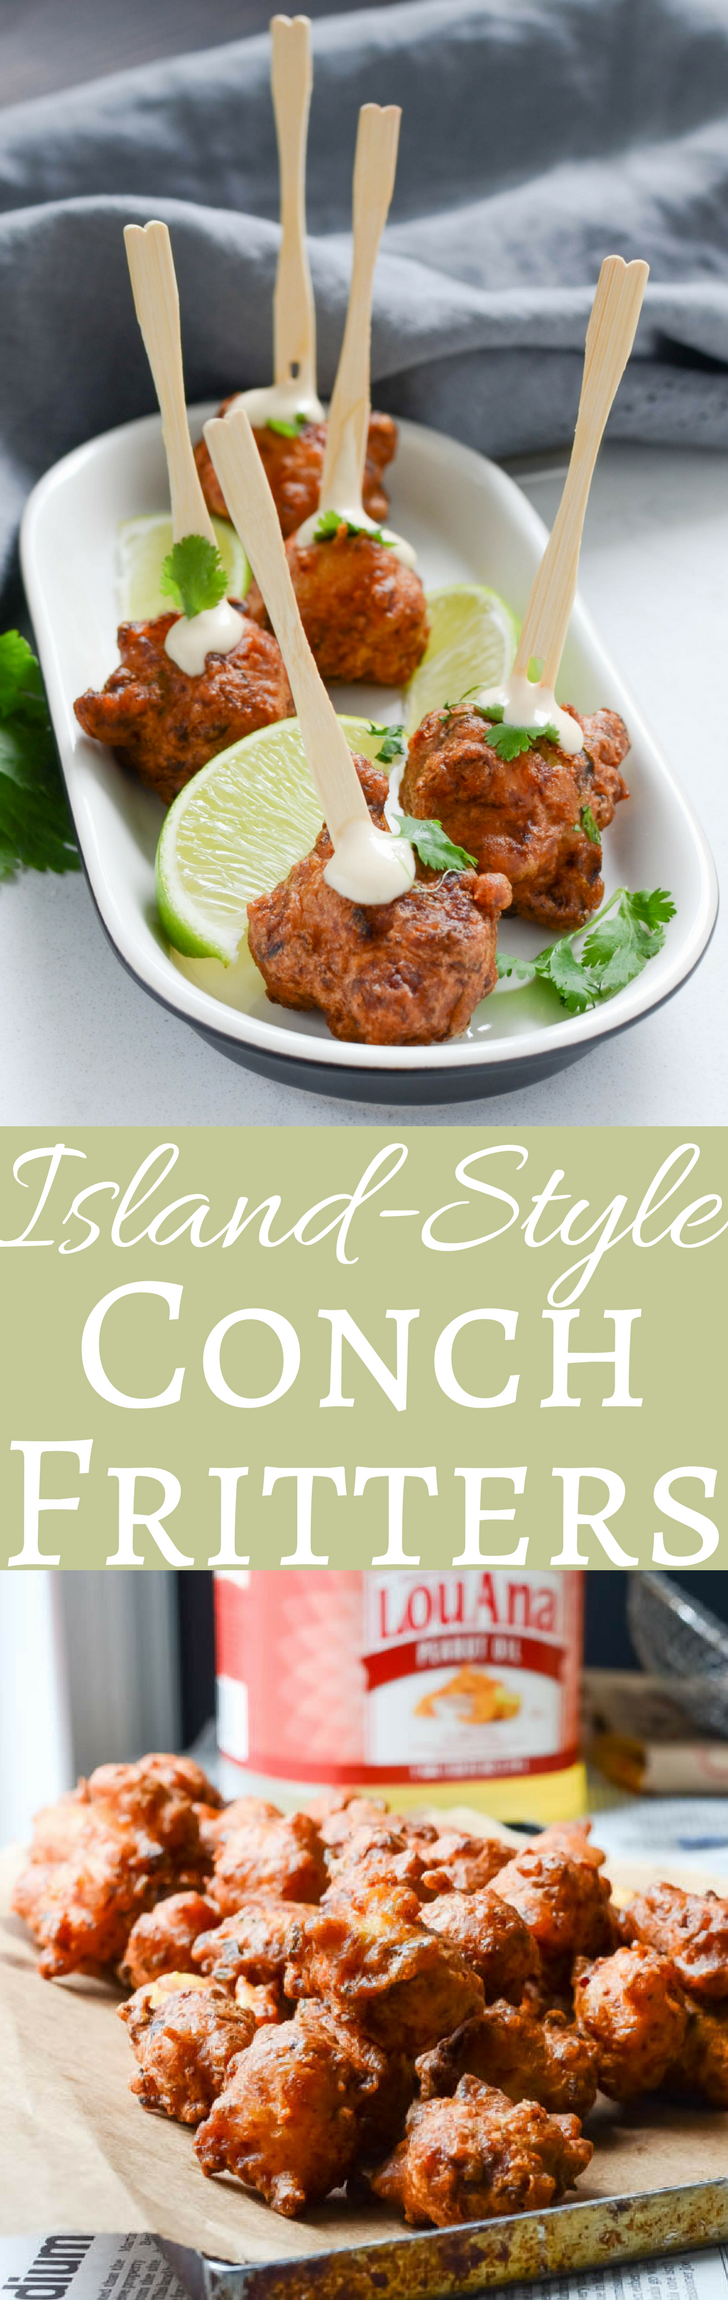 This authentic recipe for conch fritters is easier than you think!  Chunks of tender conch blended with veggies, hot pepper and a light, crispy beer batter are the closest thing to the Bahamas without the plane ticket!